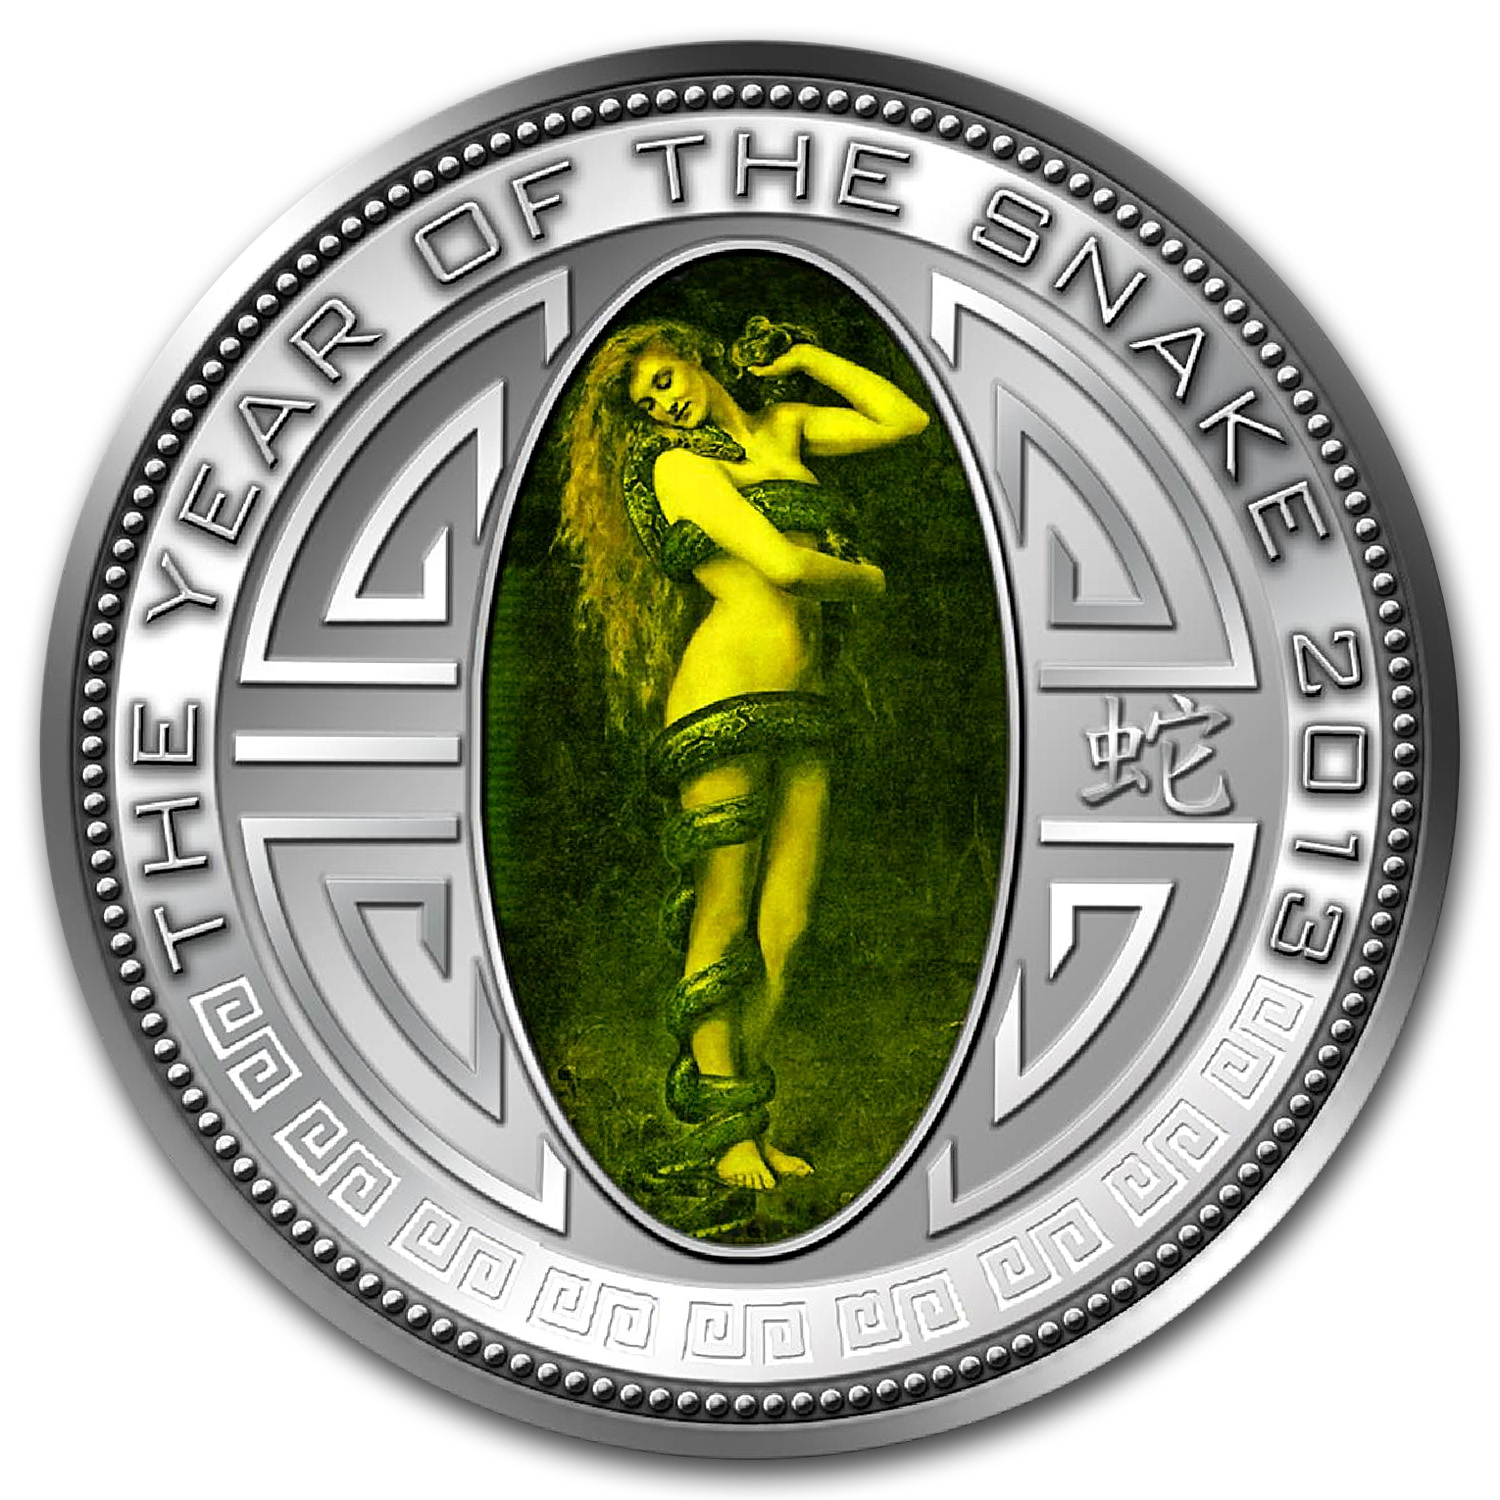 Korea 2013 Hologram Silver 5 Won Lunar Year of the Snake - Lilith